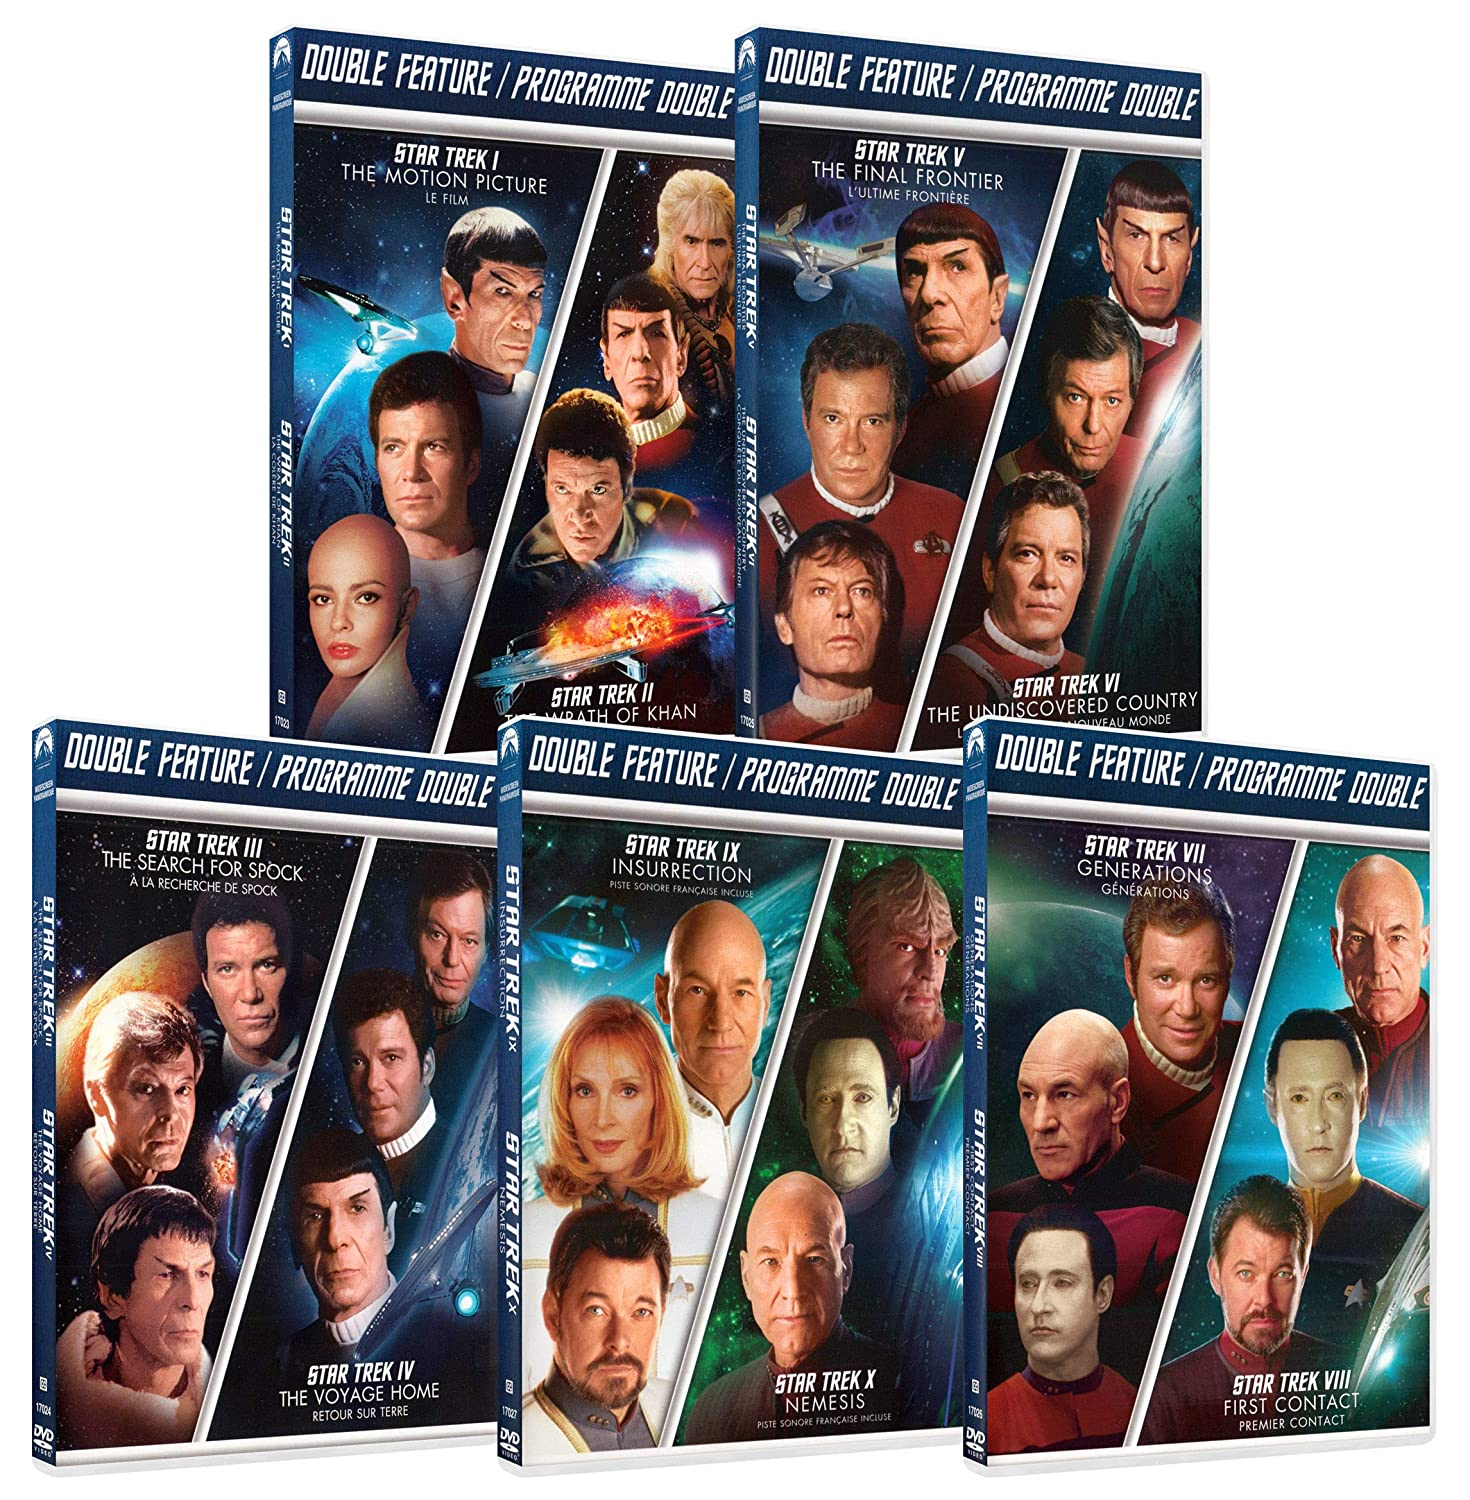 Star Trek Collection (Motion Picture / Wrath of Khan / Search For Spock / Voyage Home / Final Frontier / Undiscovered Country / Generations / First Contact / Insurrection / Nemesis)